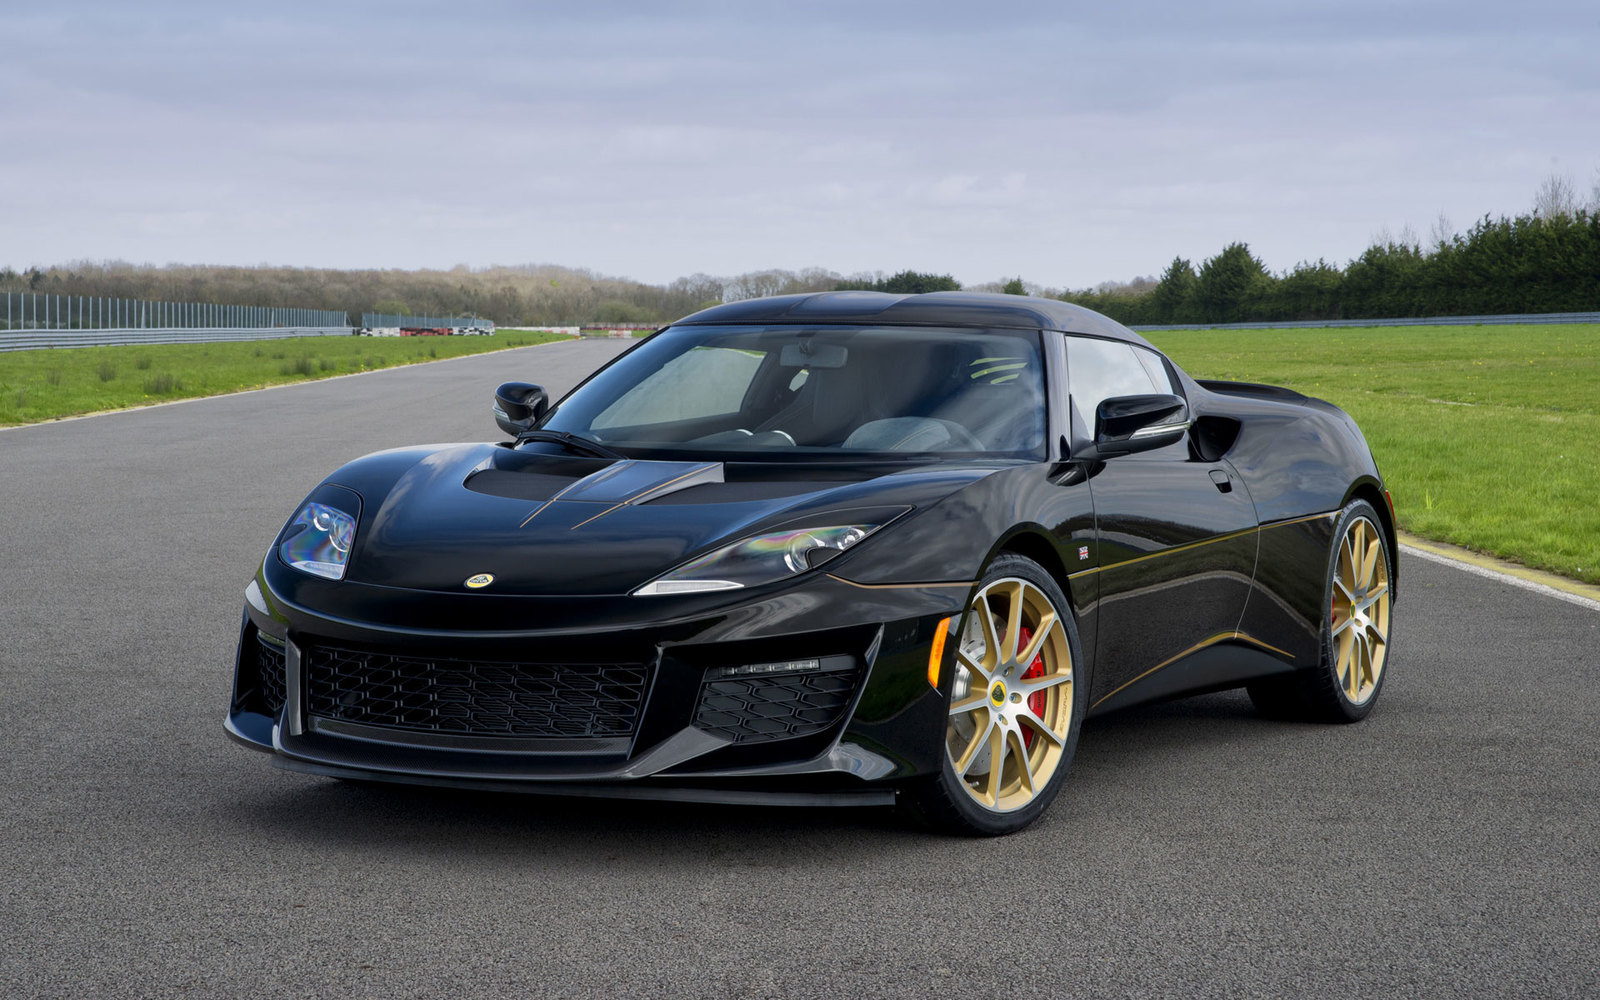 Lotus Evora Sport GP Edition